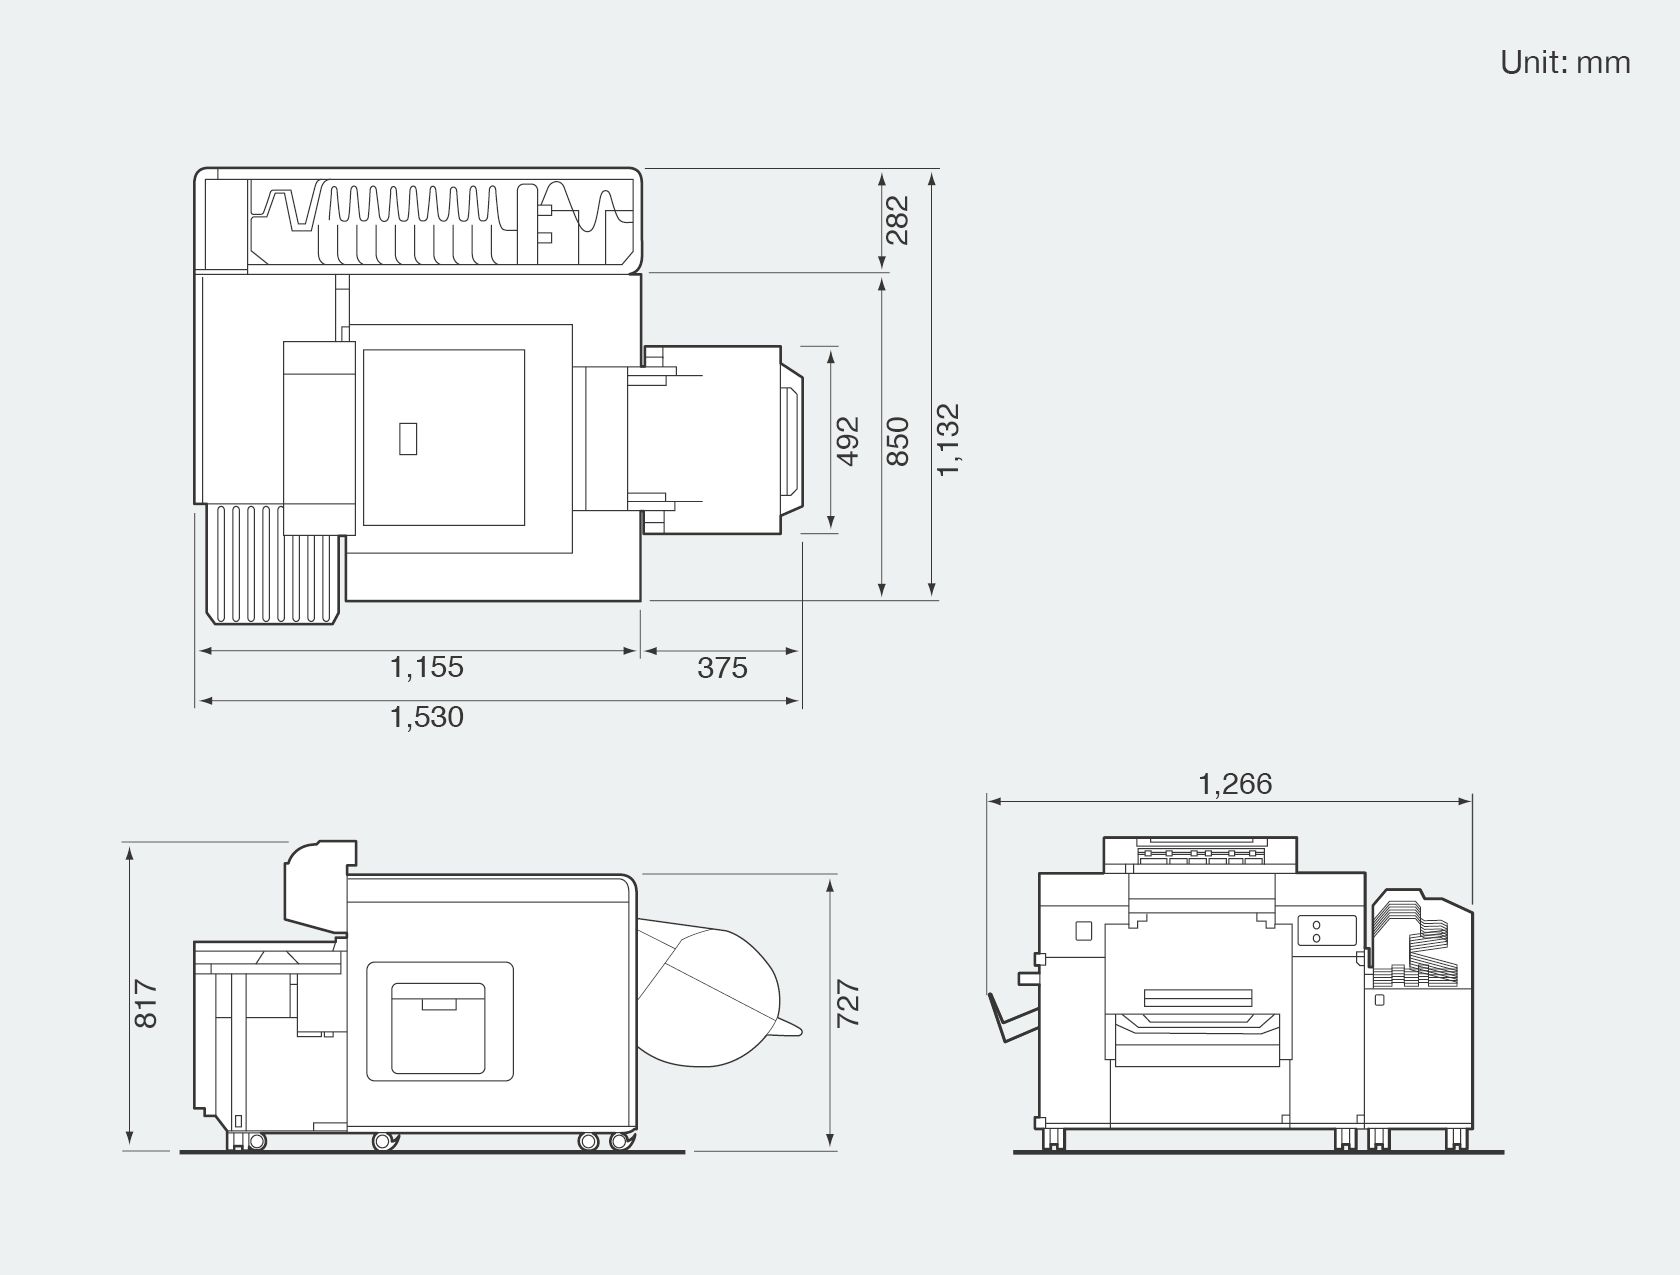 [image] Front, side, and top view graphic of Frontier DL650 PRO which shows height, width, and depth dimensions